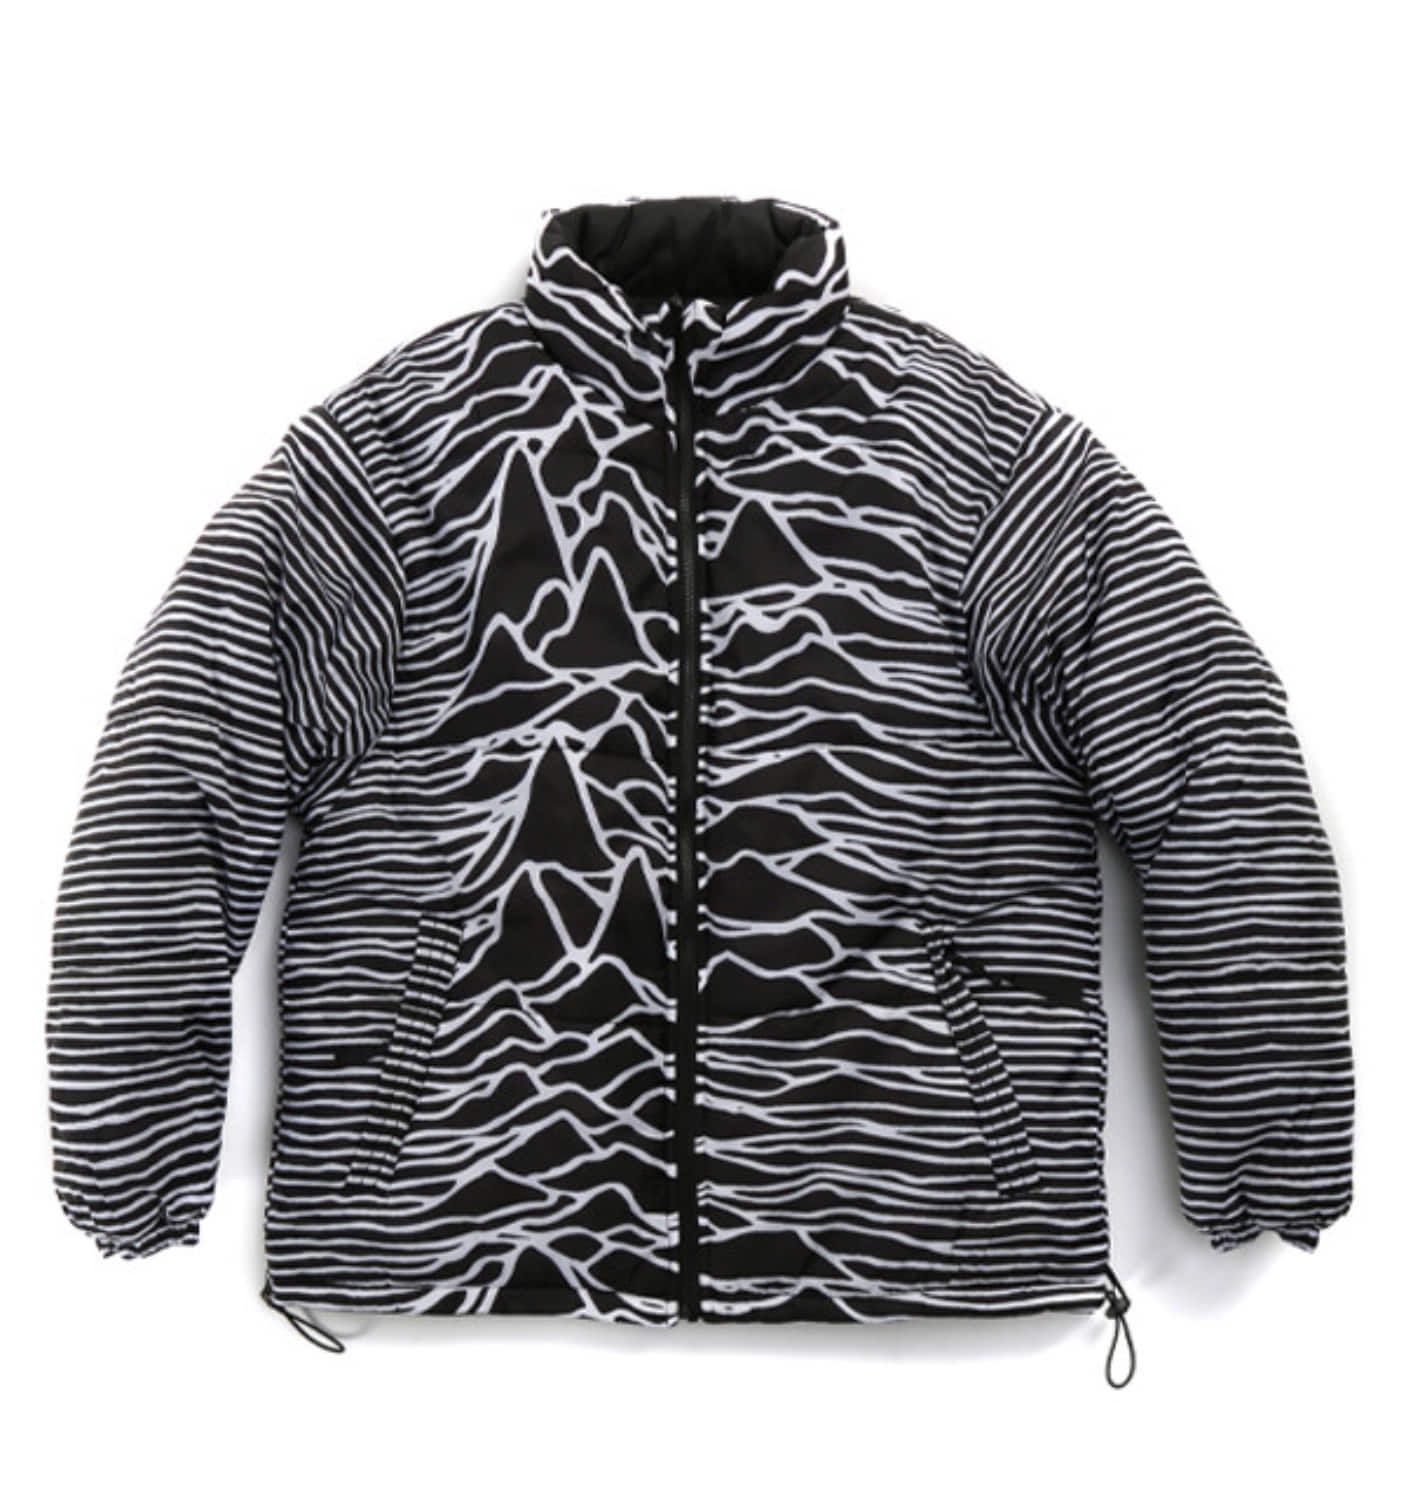 PLEASURES X JOY DIVISION DISORDER PUFFER JACKET BK